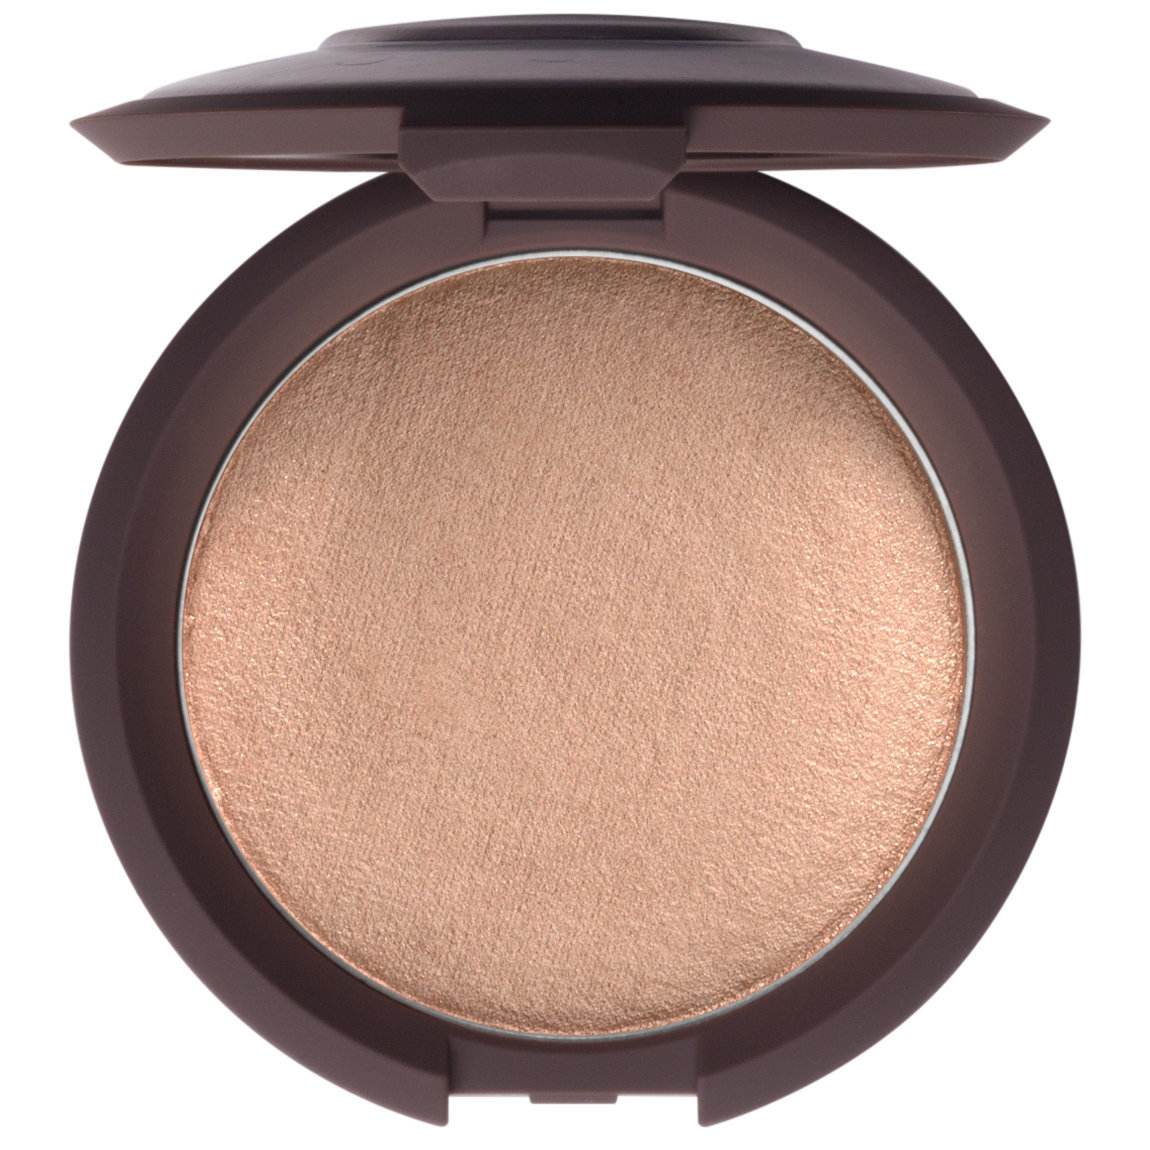 BECCA Cosmetics Shimmering Skin Perfector Pressed Highlighter Opal alternative view 1 - product swatch.